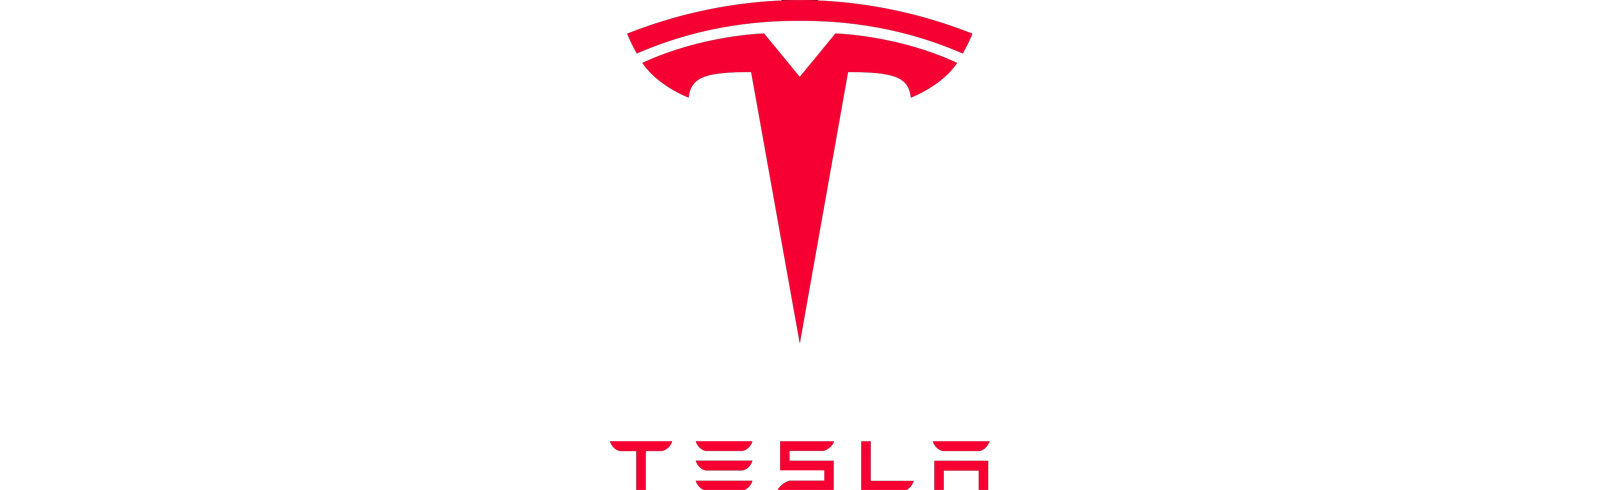 Tesla patents a method and system for checking the status of the electrolyte in Li-Ion battery cells